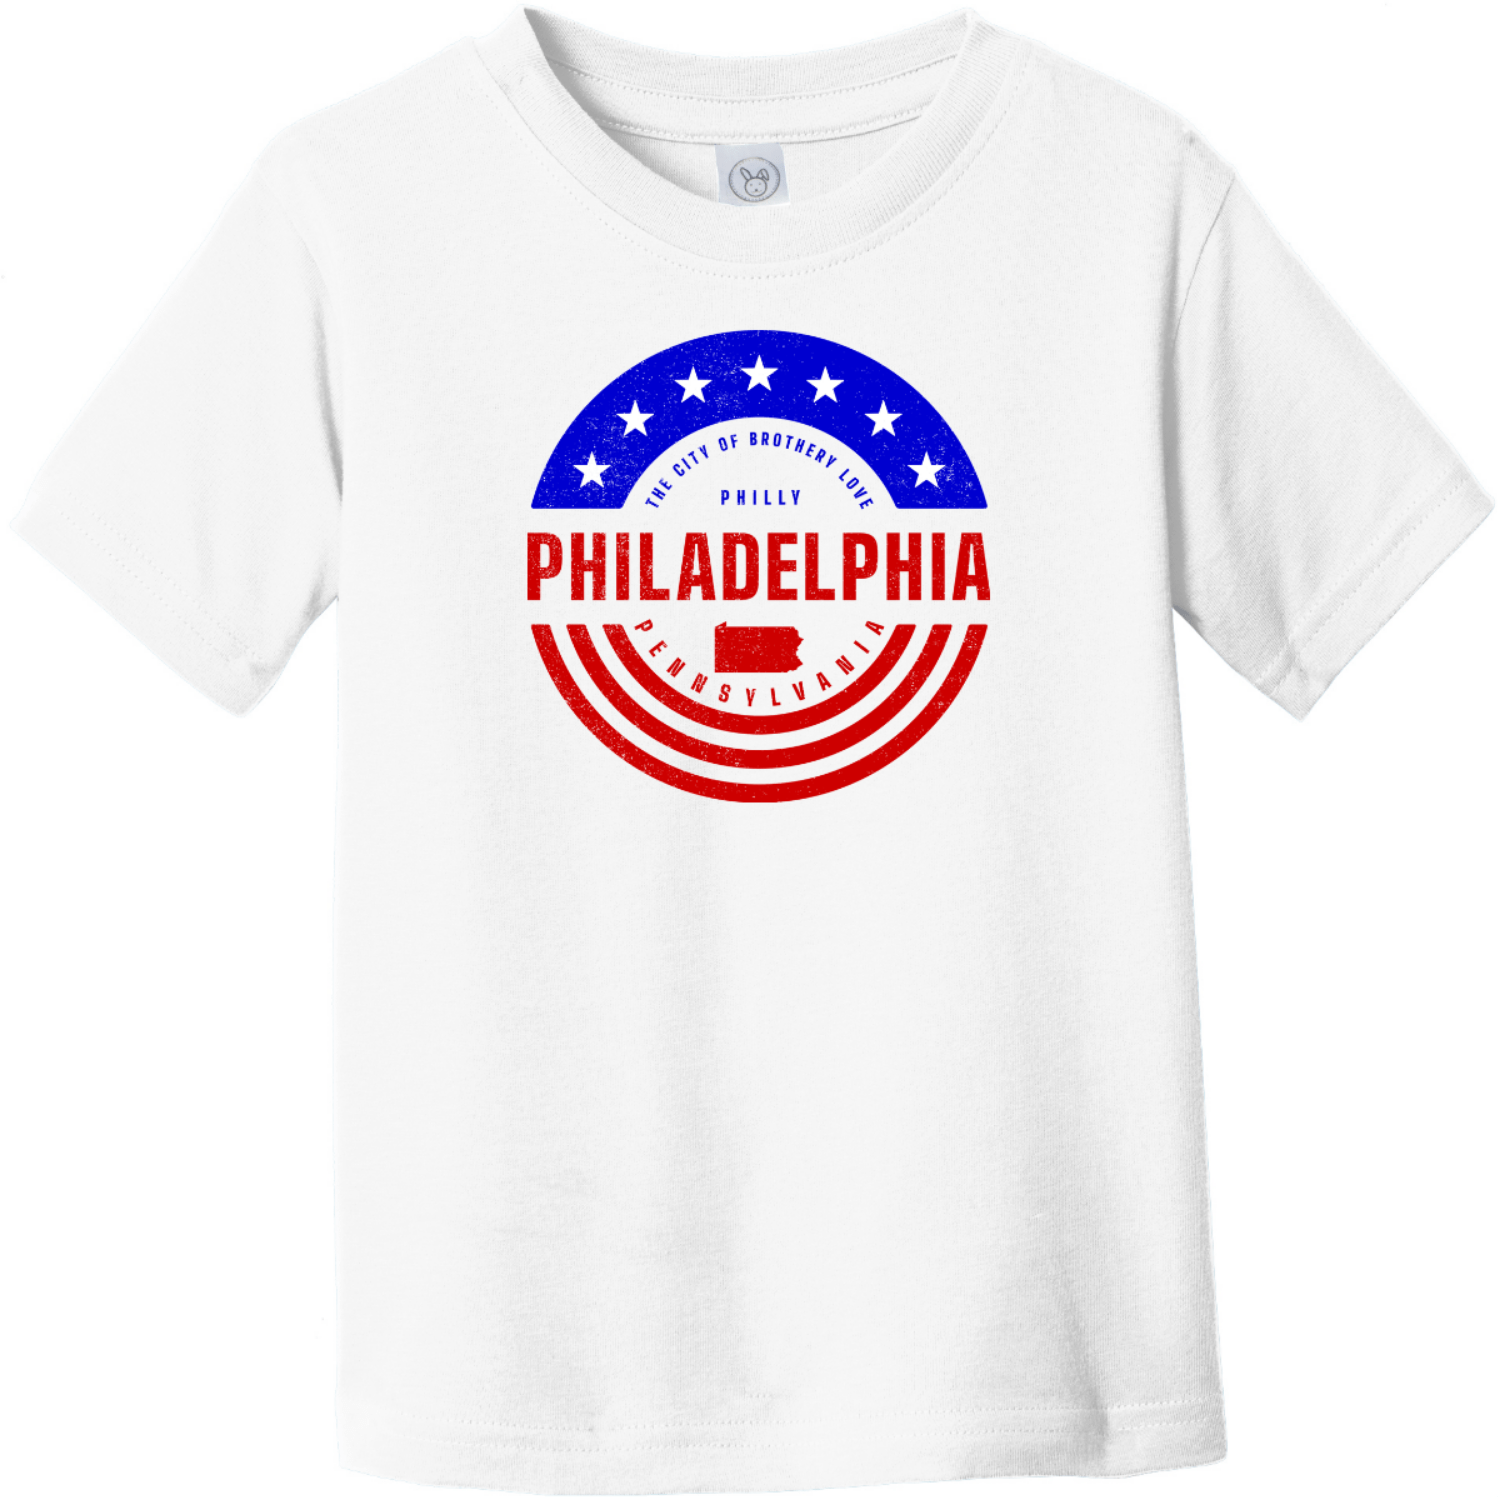 Philadelphia Pennsylvania Patriotic Toddler T-Shirt White Rabbit Skins Toddler Fine Jersey Tee RS3321